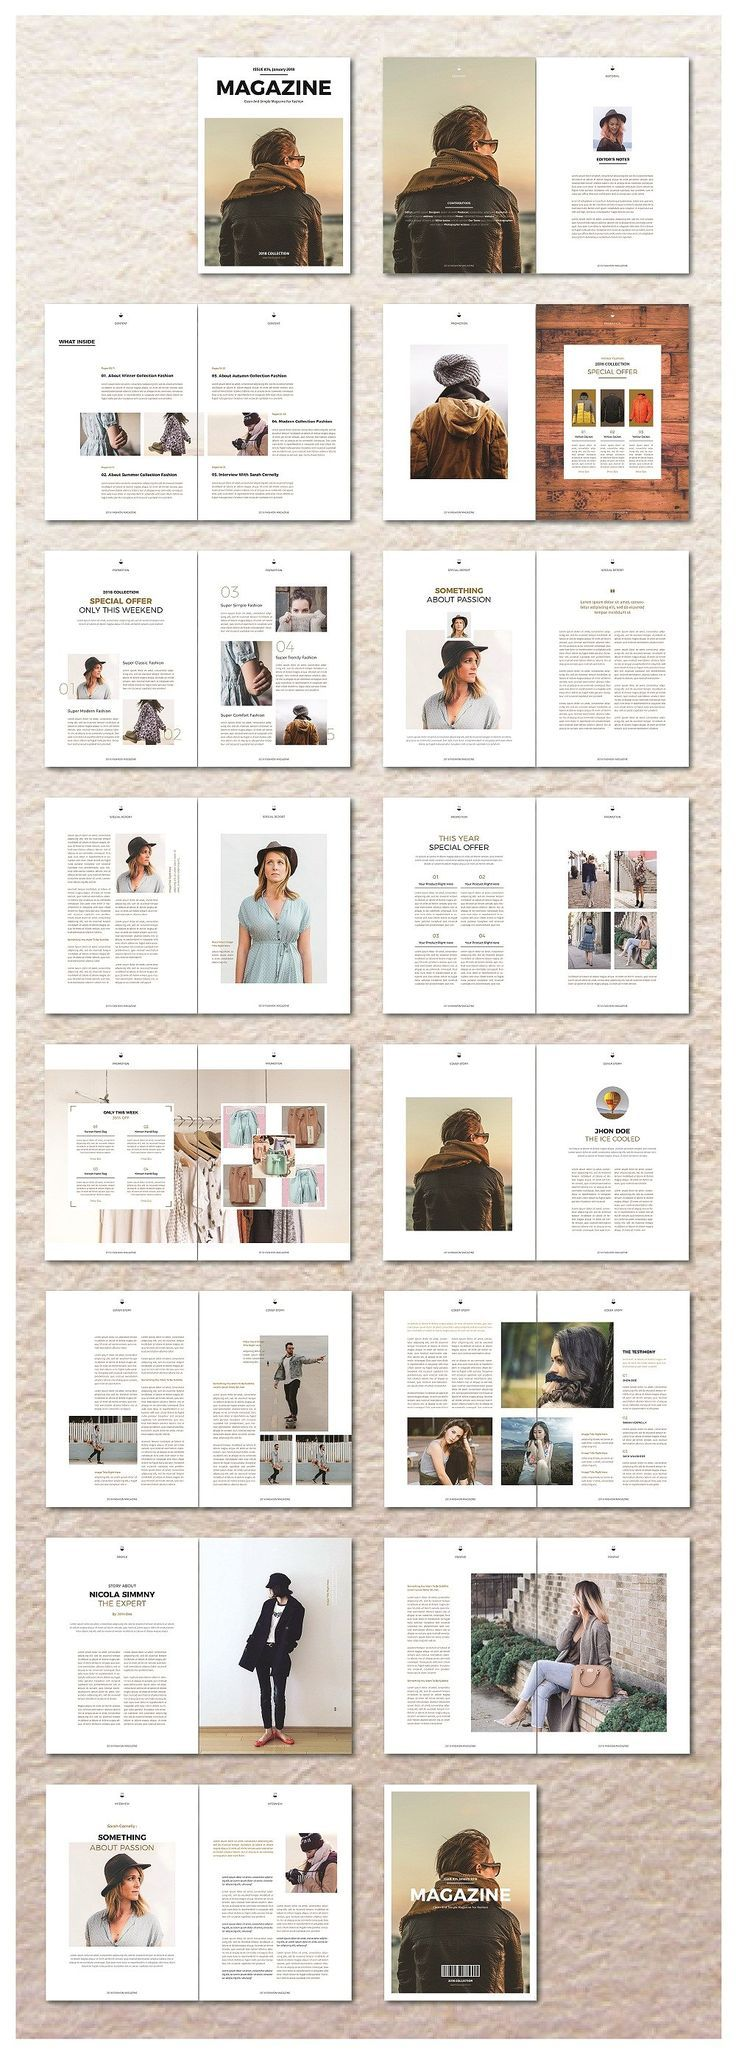 Magazine Template by ZoroGraph on Creative Market